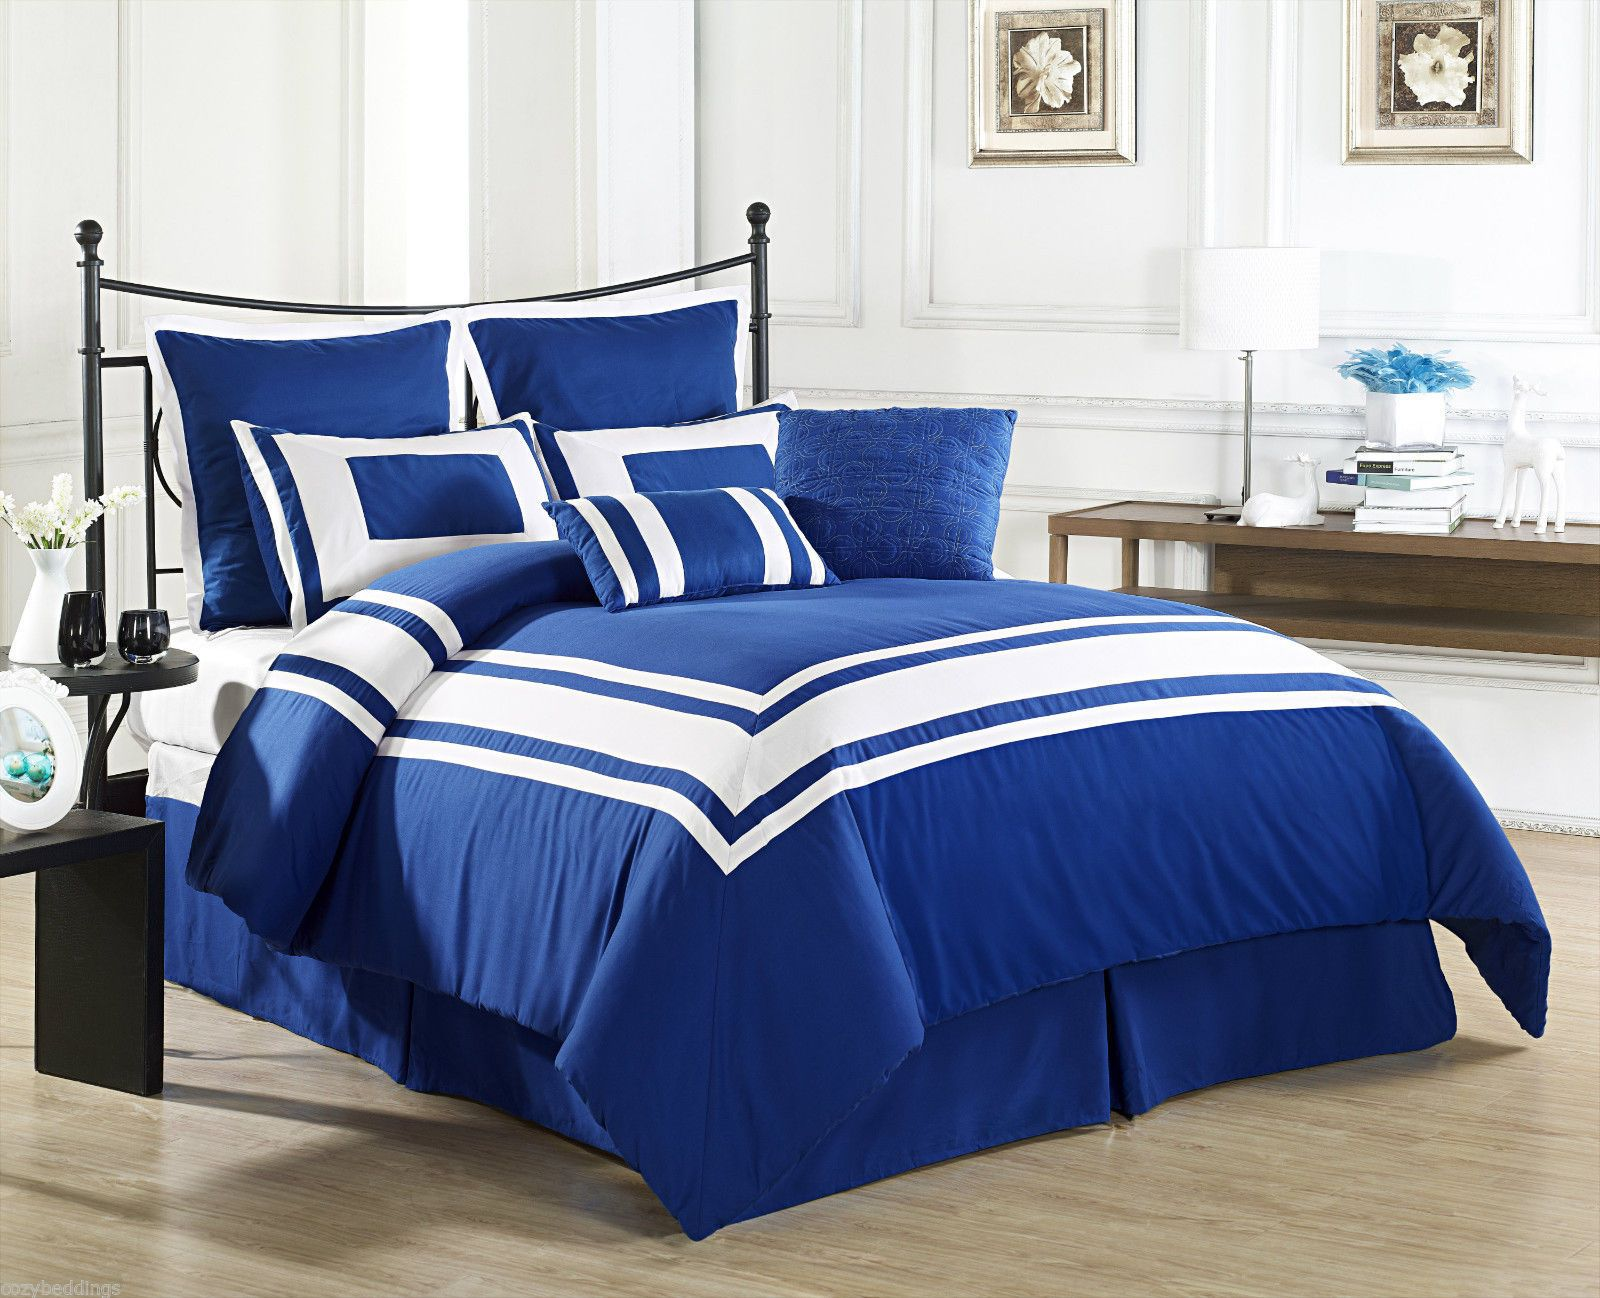 Lux decor royal blue queen size bed 8 piece comforter set white stripe bedding